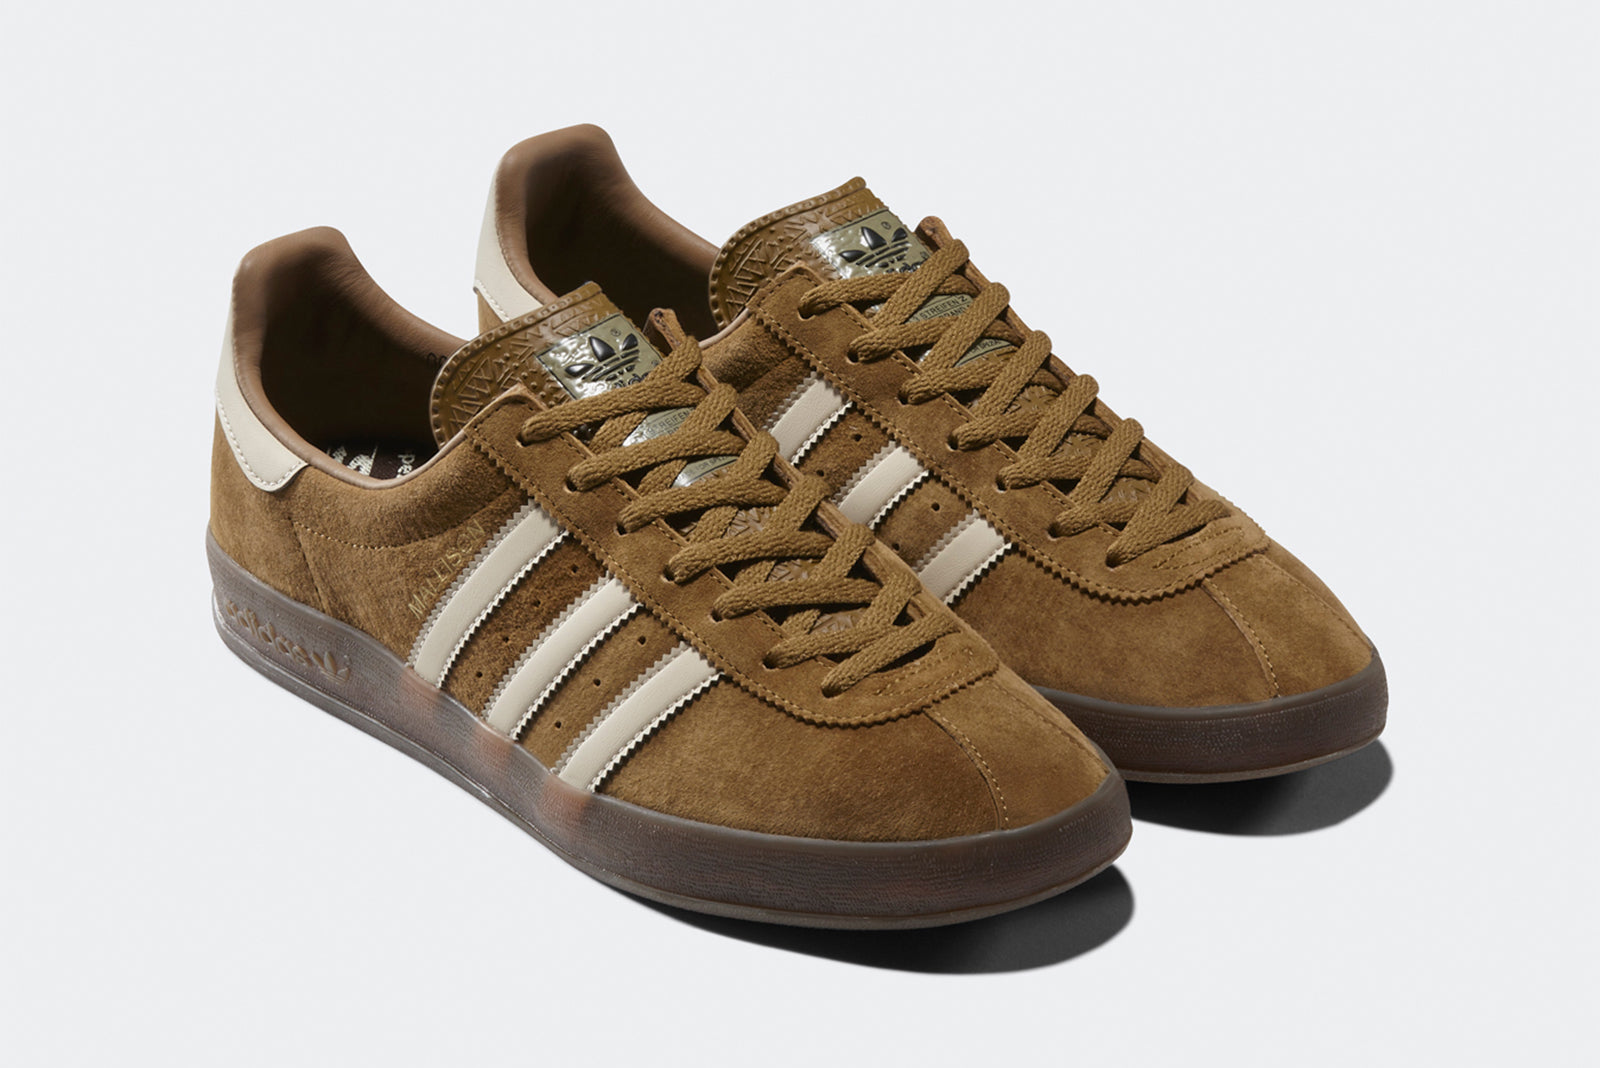 cheap for discount 0c640 6c4ab adidas Mallison SPZL B41824 Brown Chalk Brown Price  £99.00. Launch   Thursday 20th of September ONLINE  23 00BST